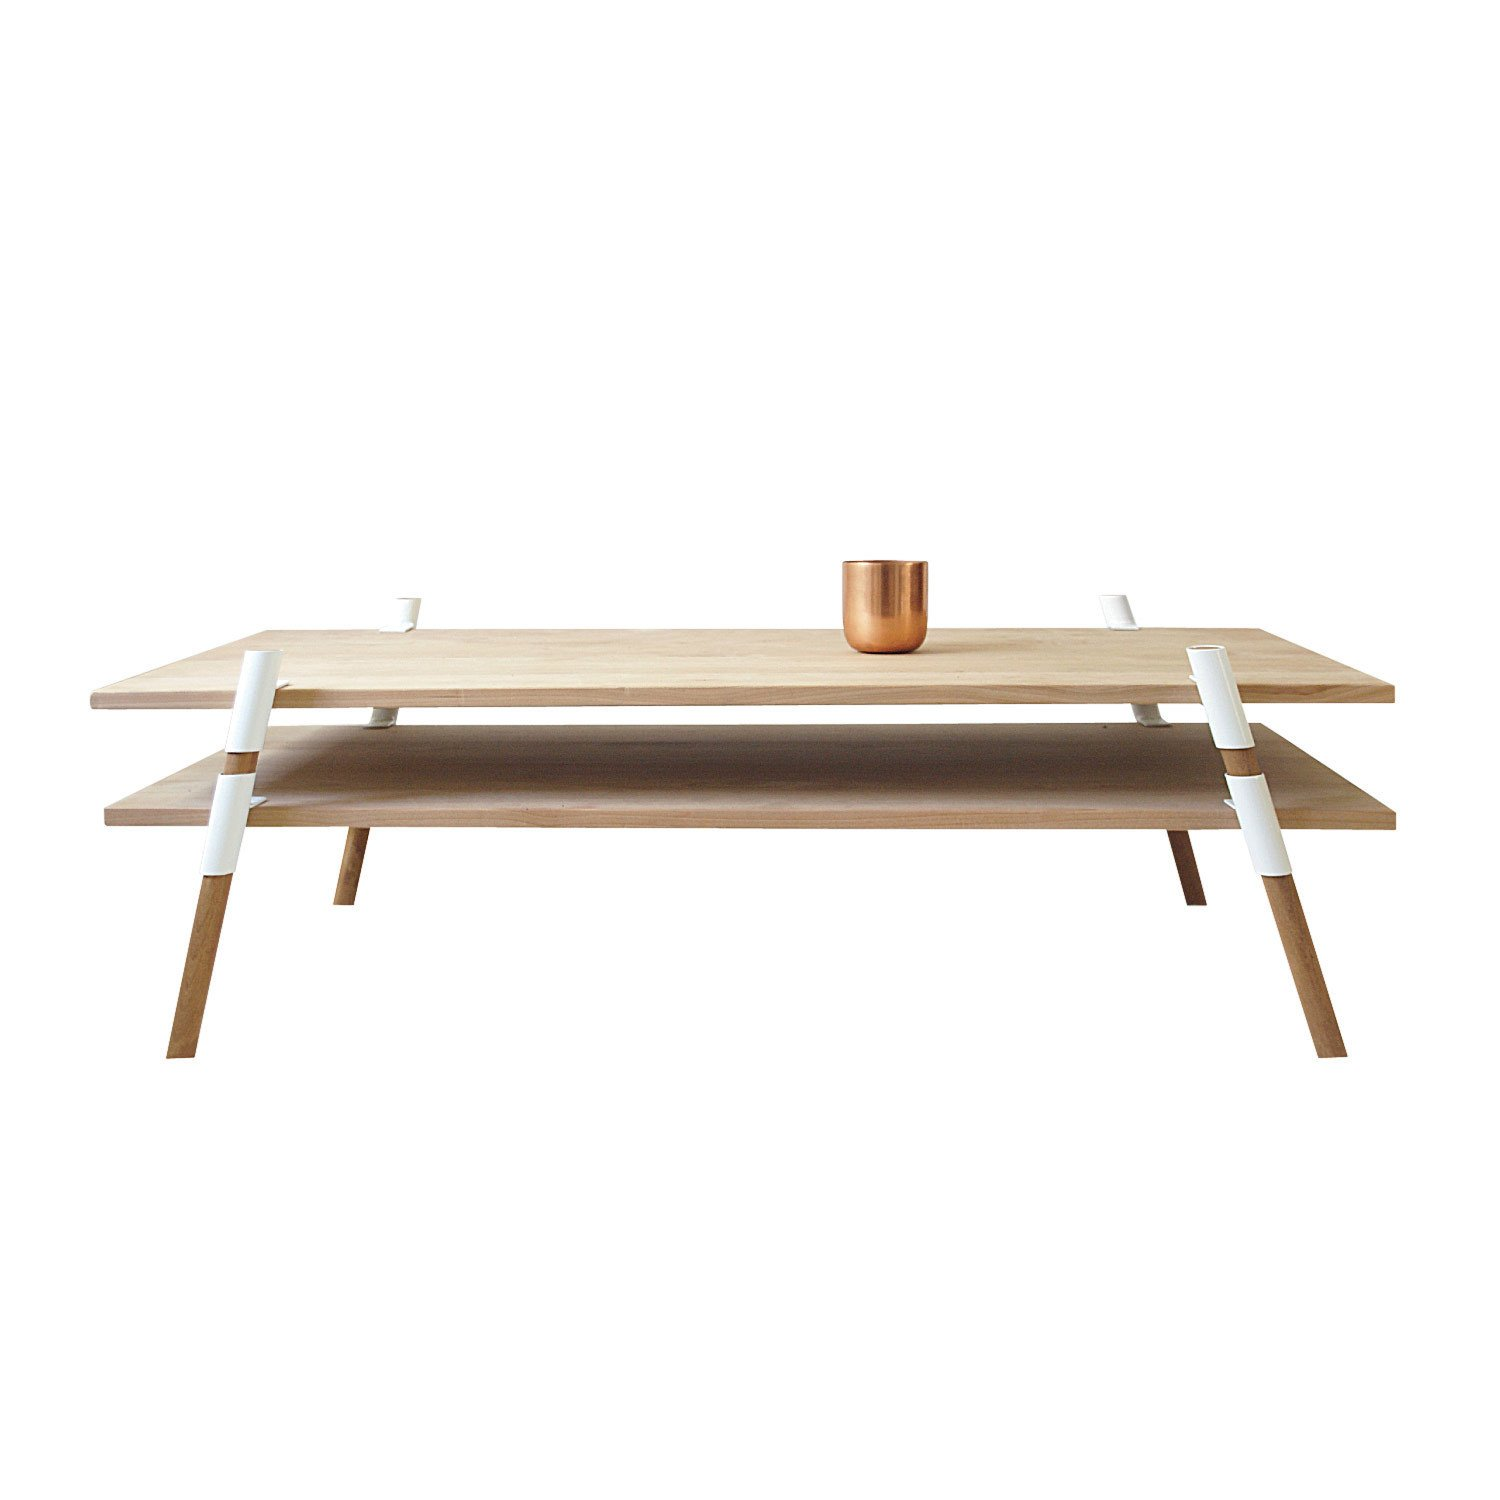 St. Augustine, Florida  2-Tier Coffee Table by Yield Design Co., from $950. Yield Design's restrained material palette showcases each element of this flat-pack alder table with powder-coated steel hardware.  Photo 3 of 9 in 9 Modern Designs That Were Born in the USA